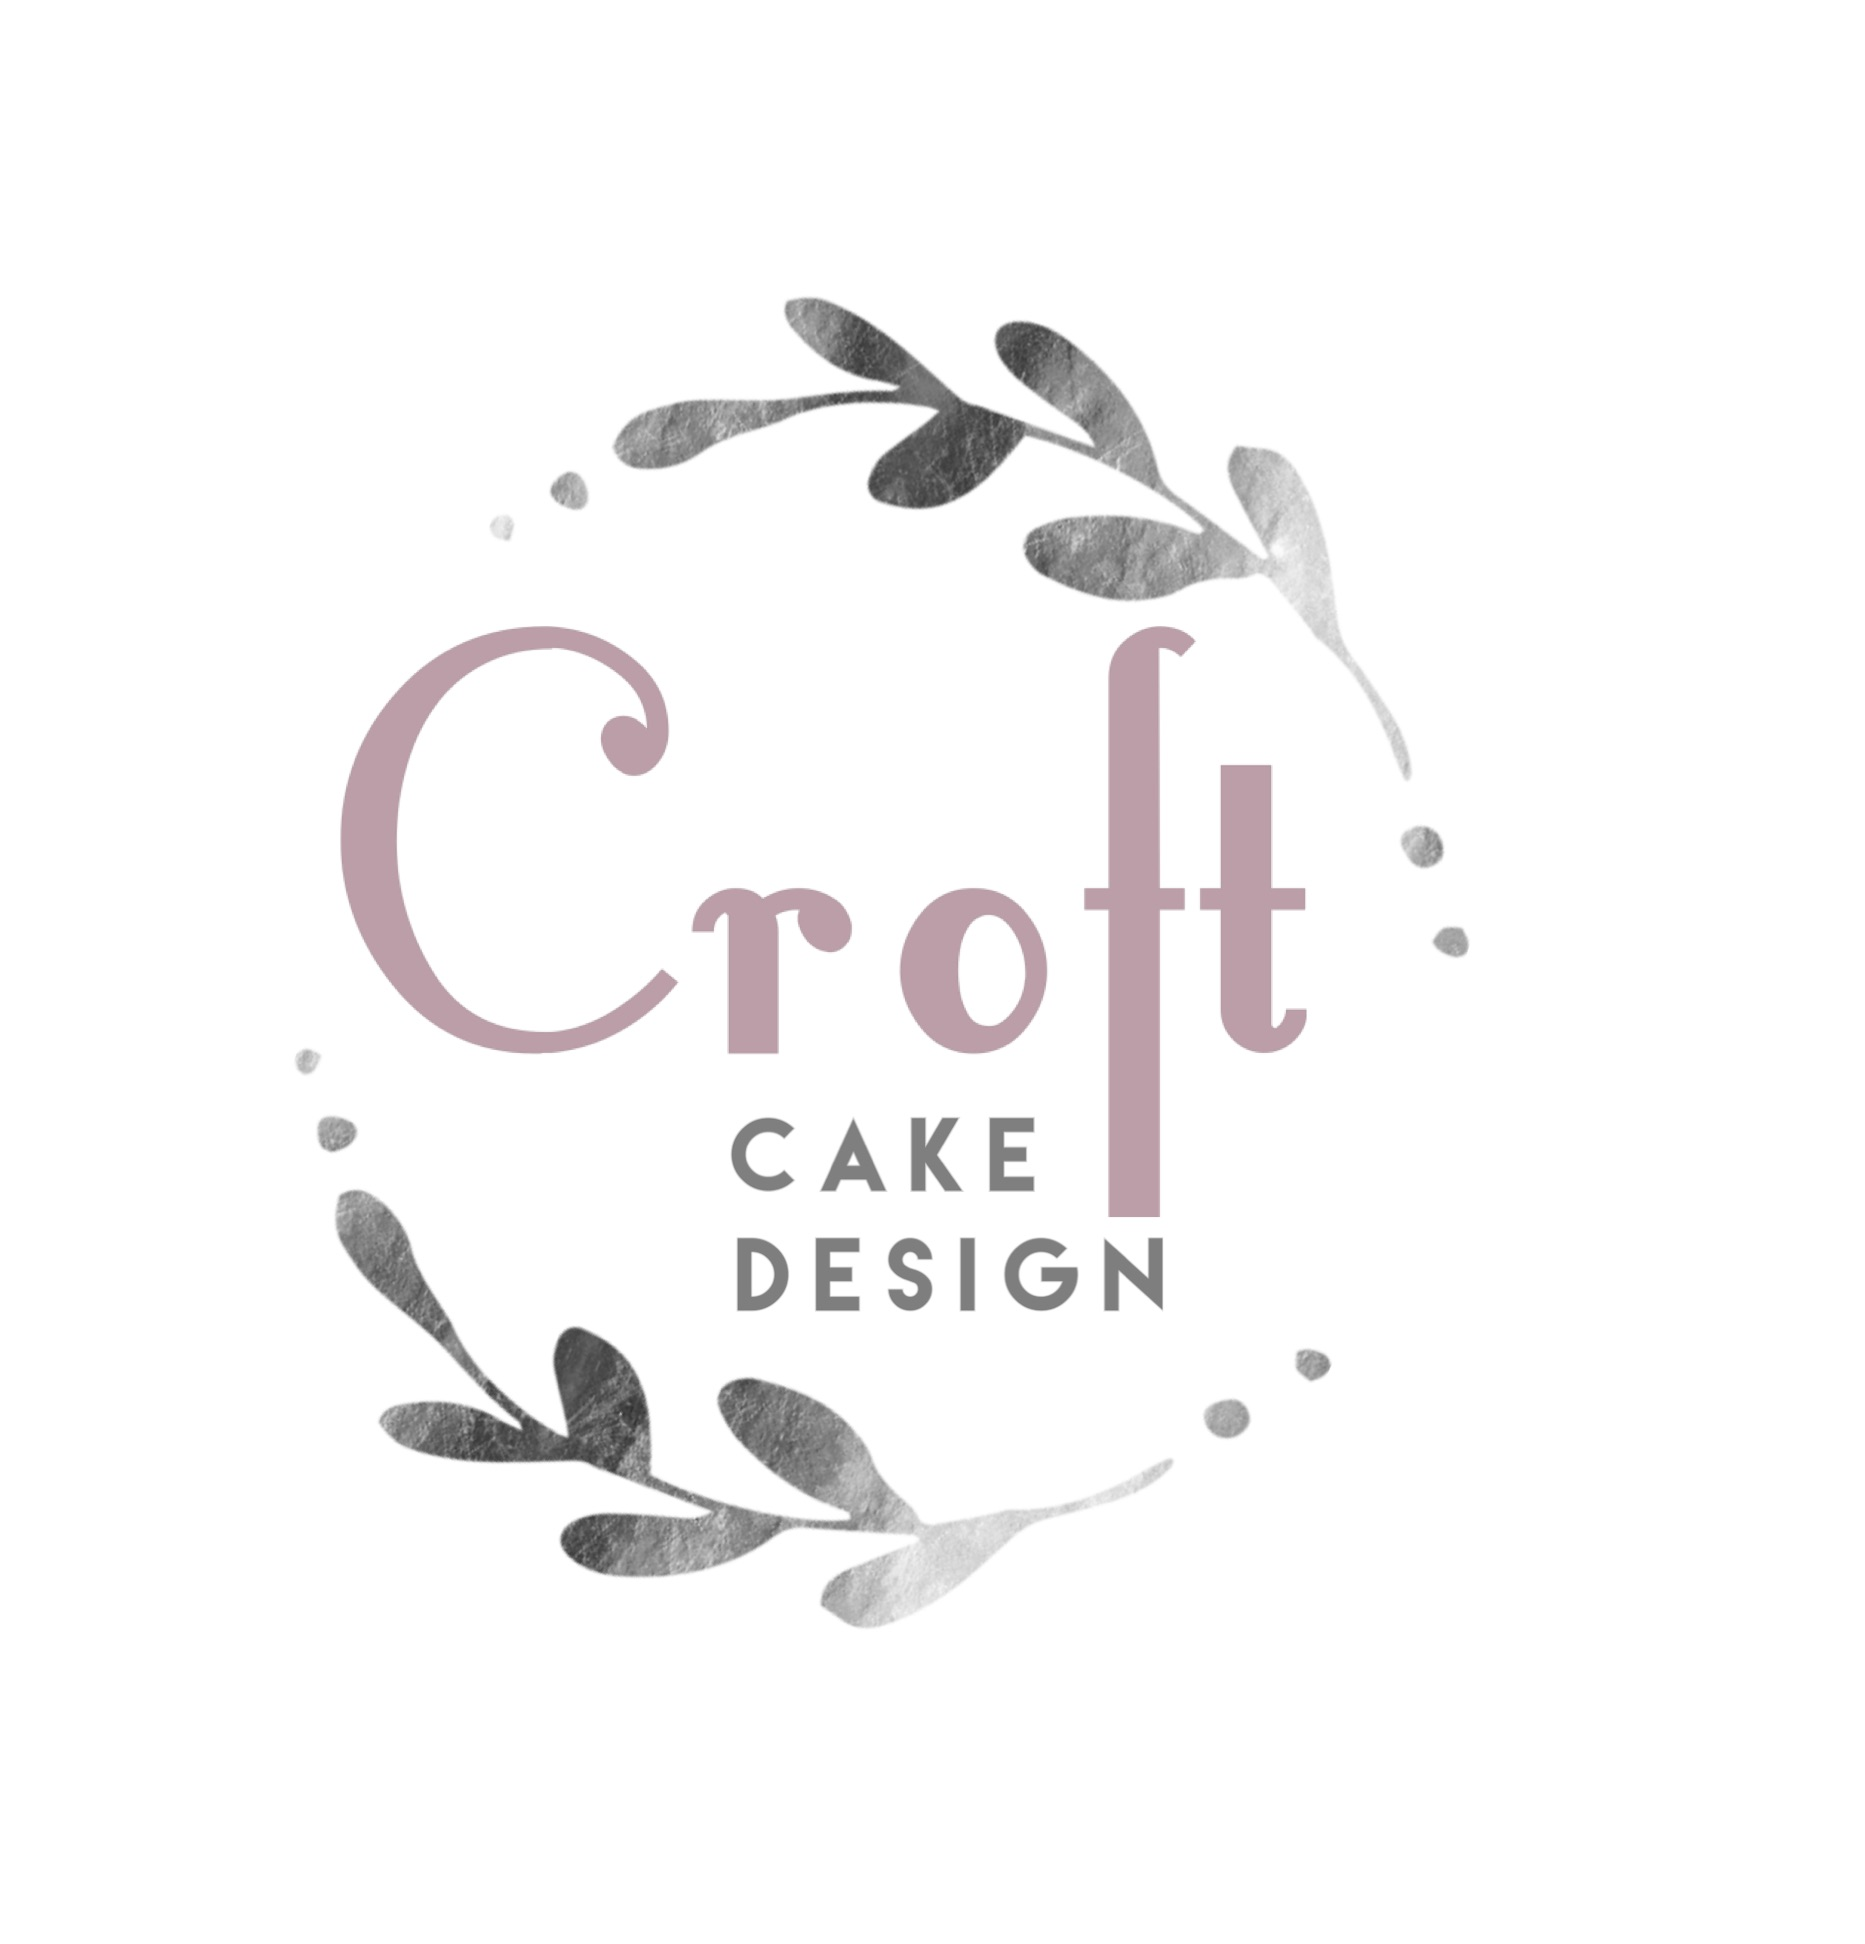 Croft Cake Design